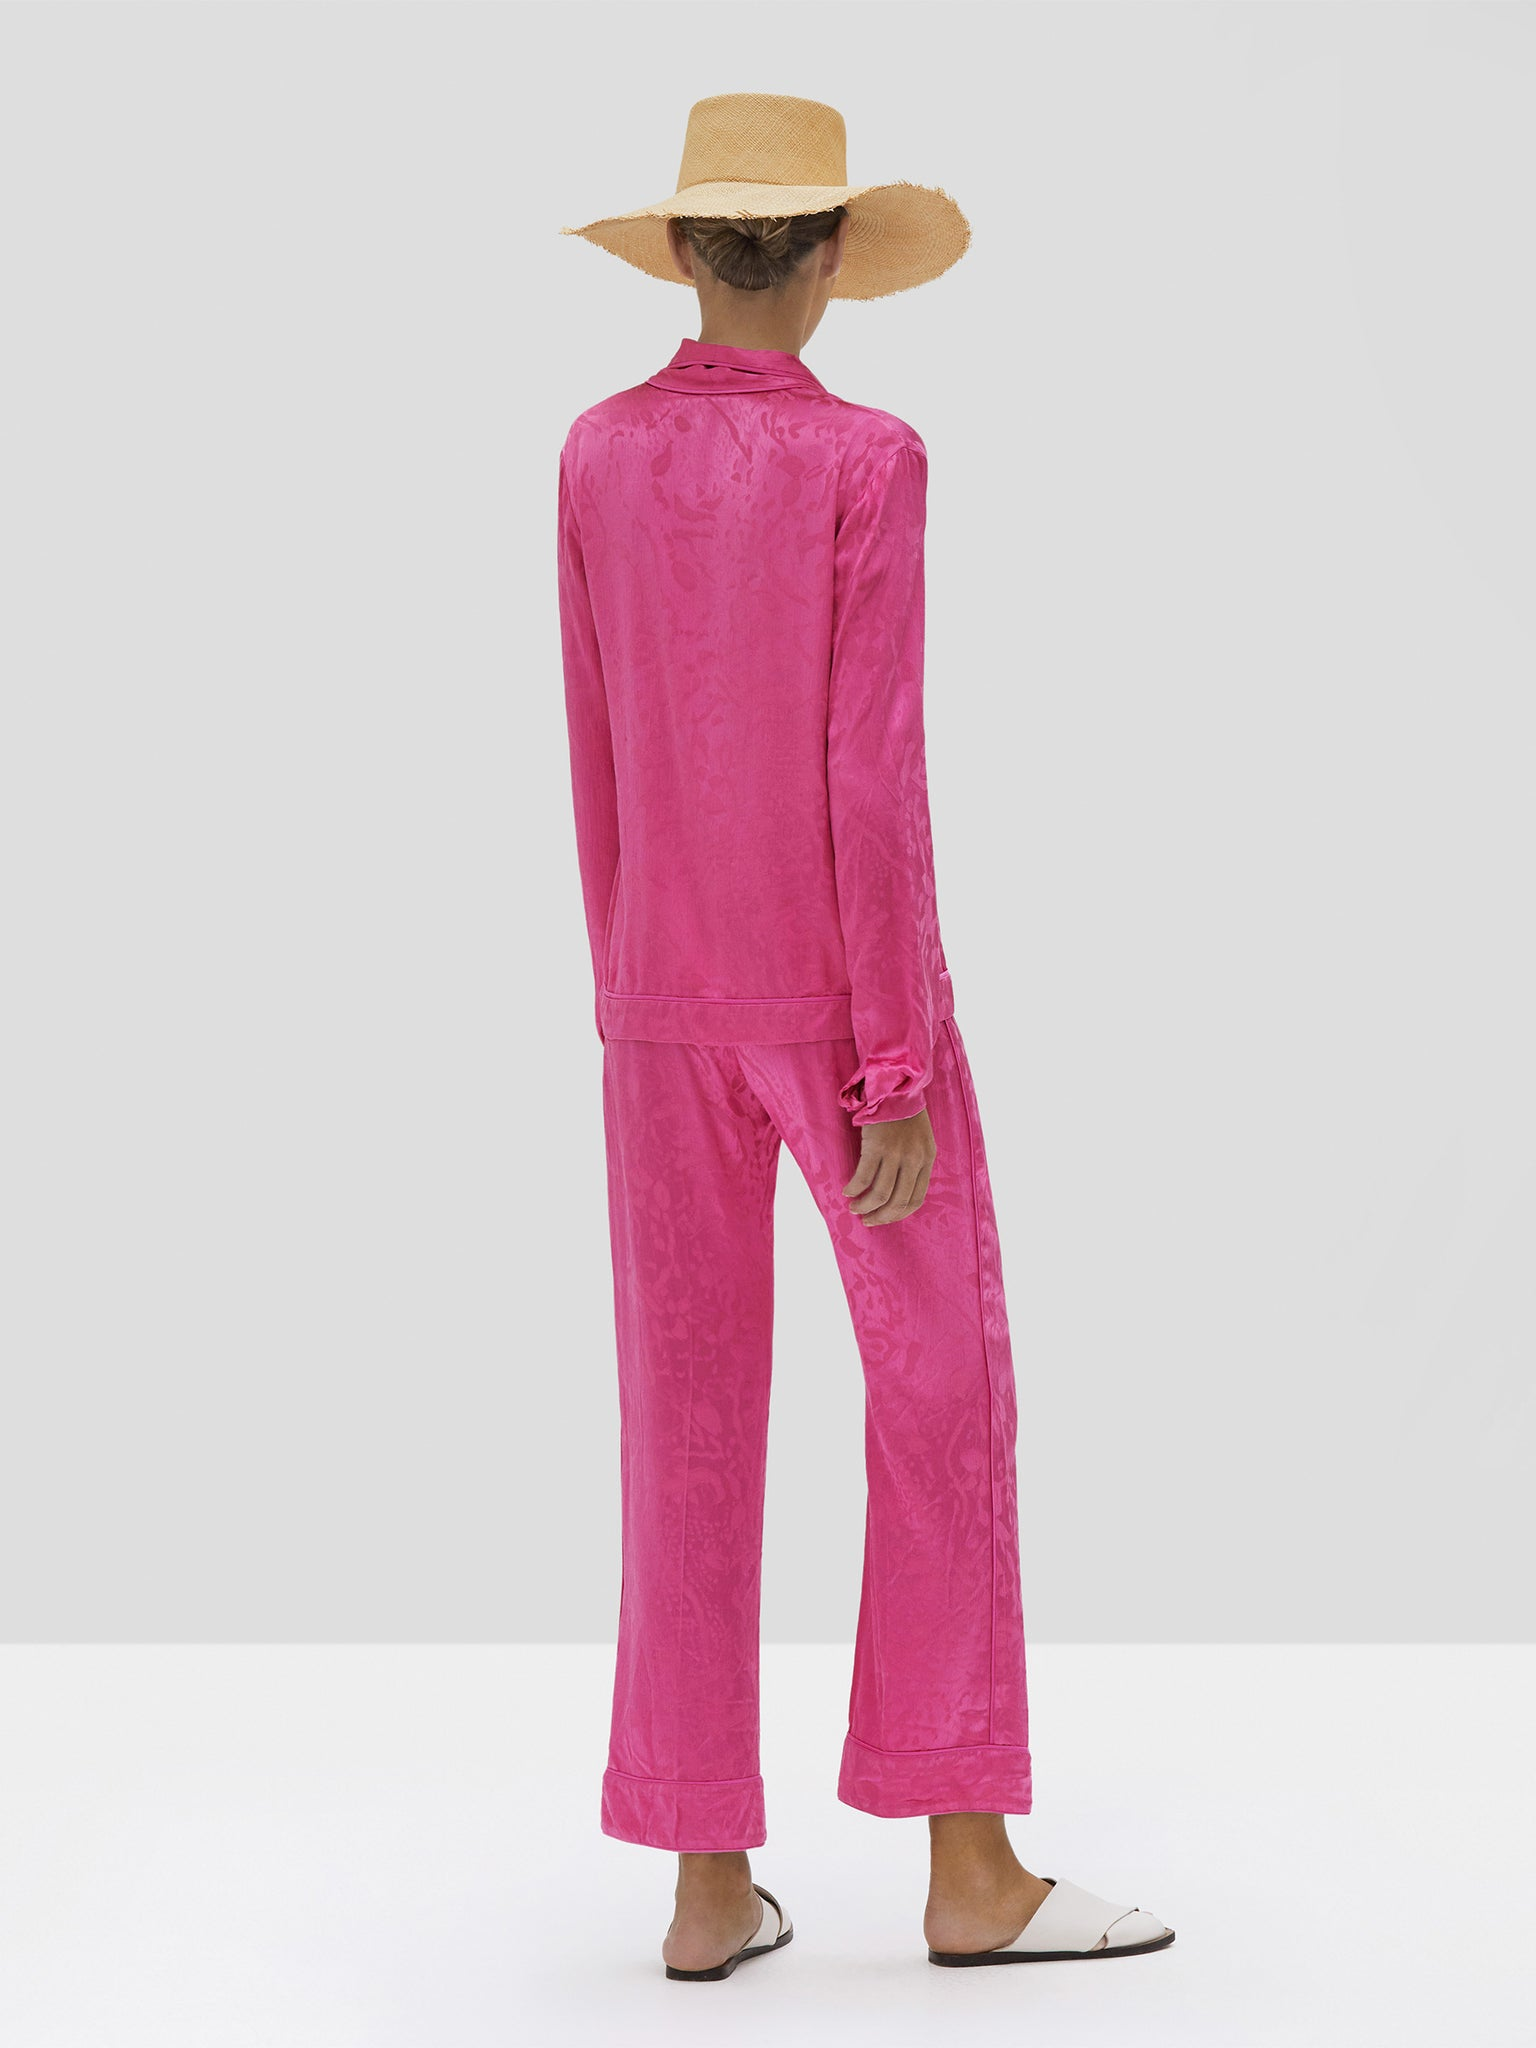 Alexis Cadi Top and Desna Pant in Vivid Fuschia from Spring Summer 2020 - Rear View